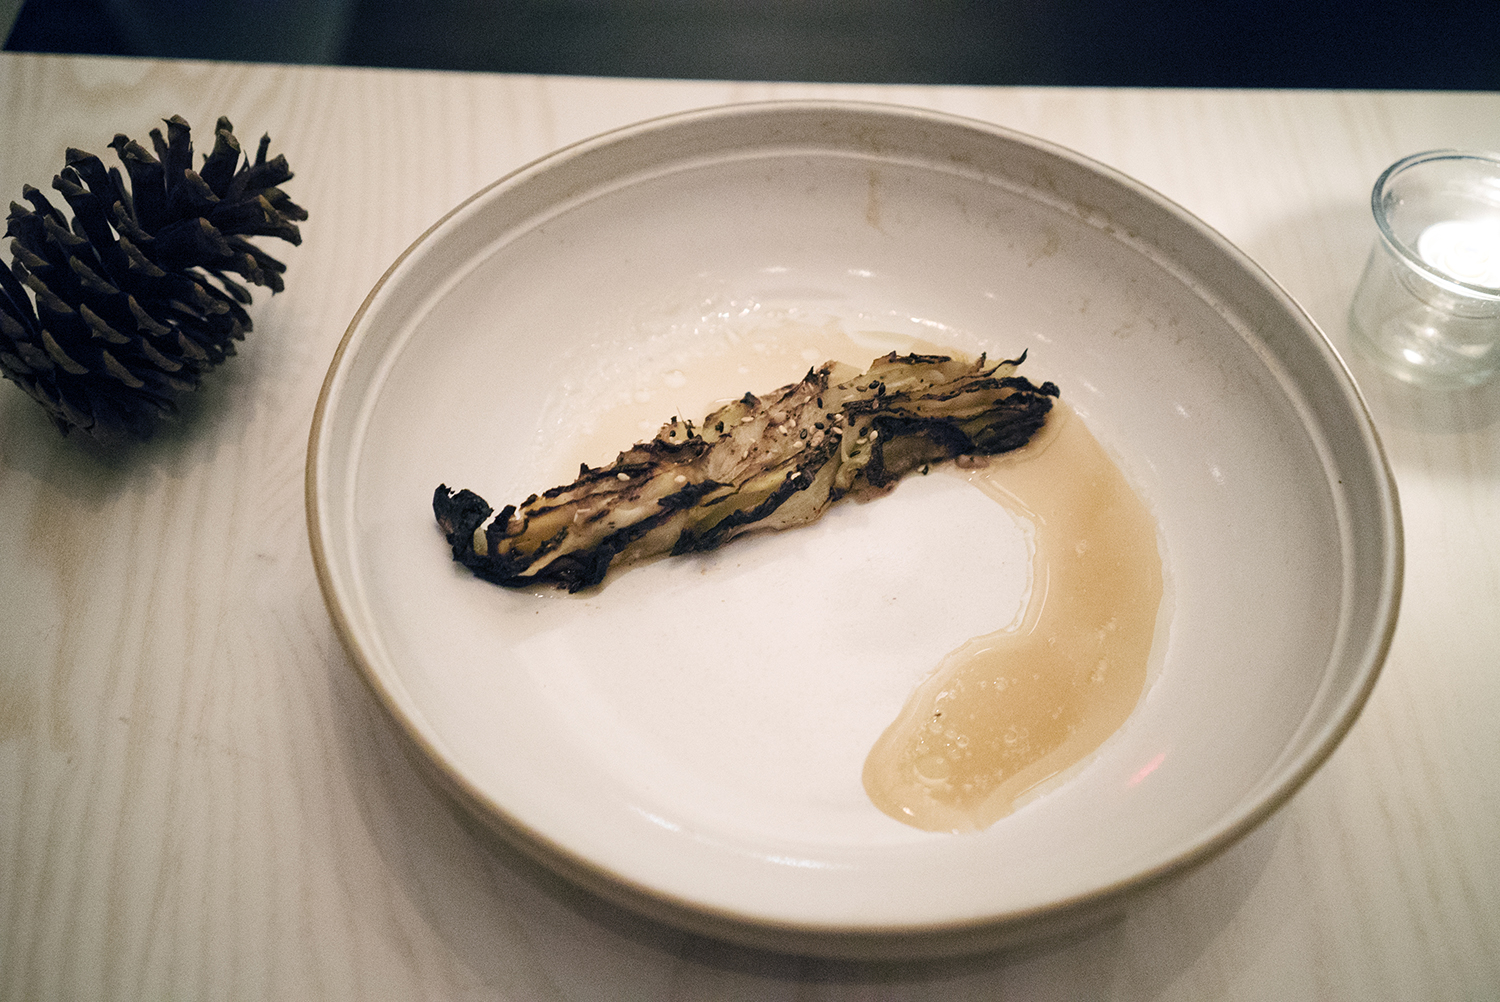 BARBECUED CABBAGE - Rutabaga, Apple and Toasted Seeds